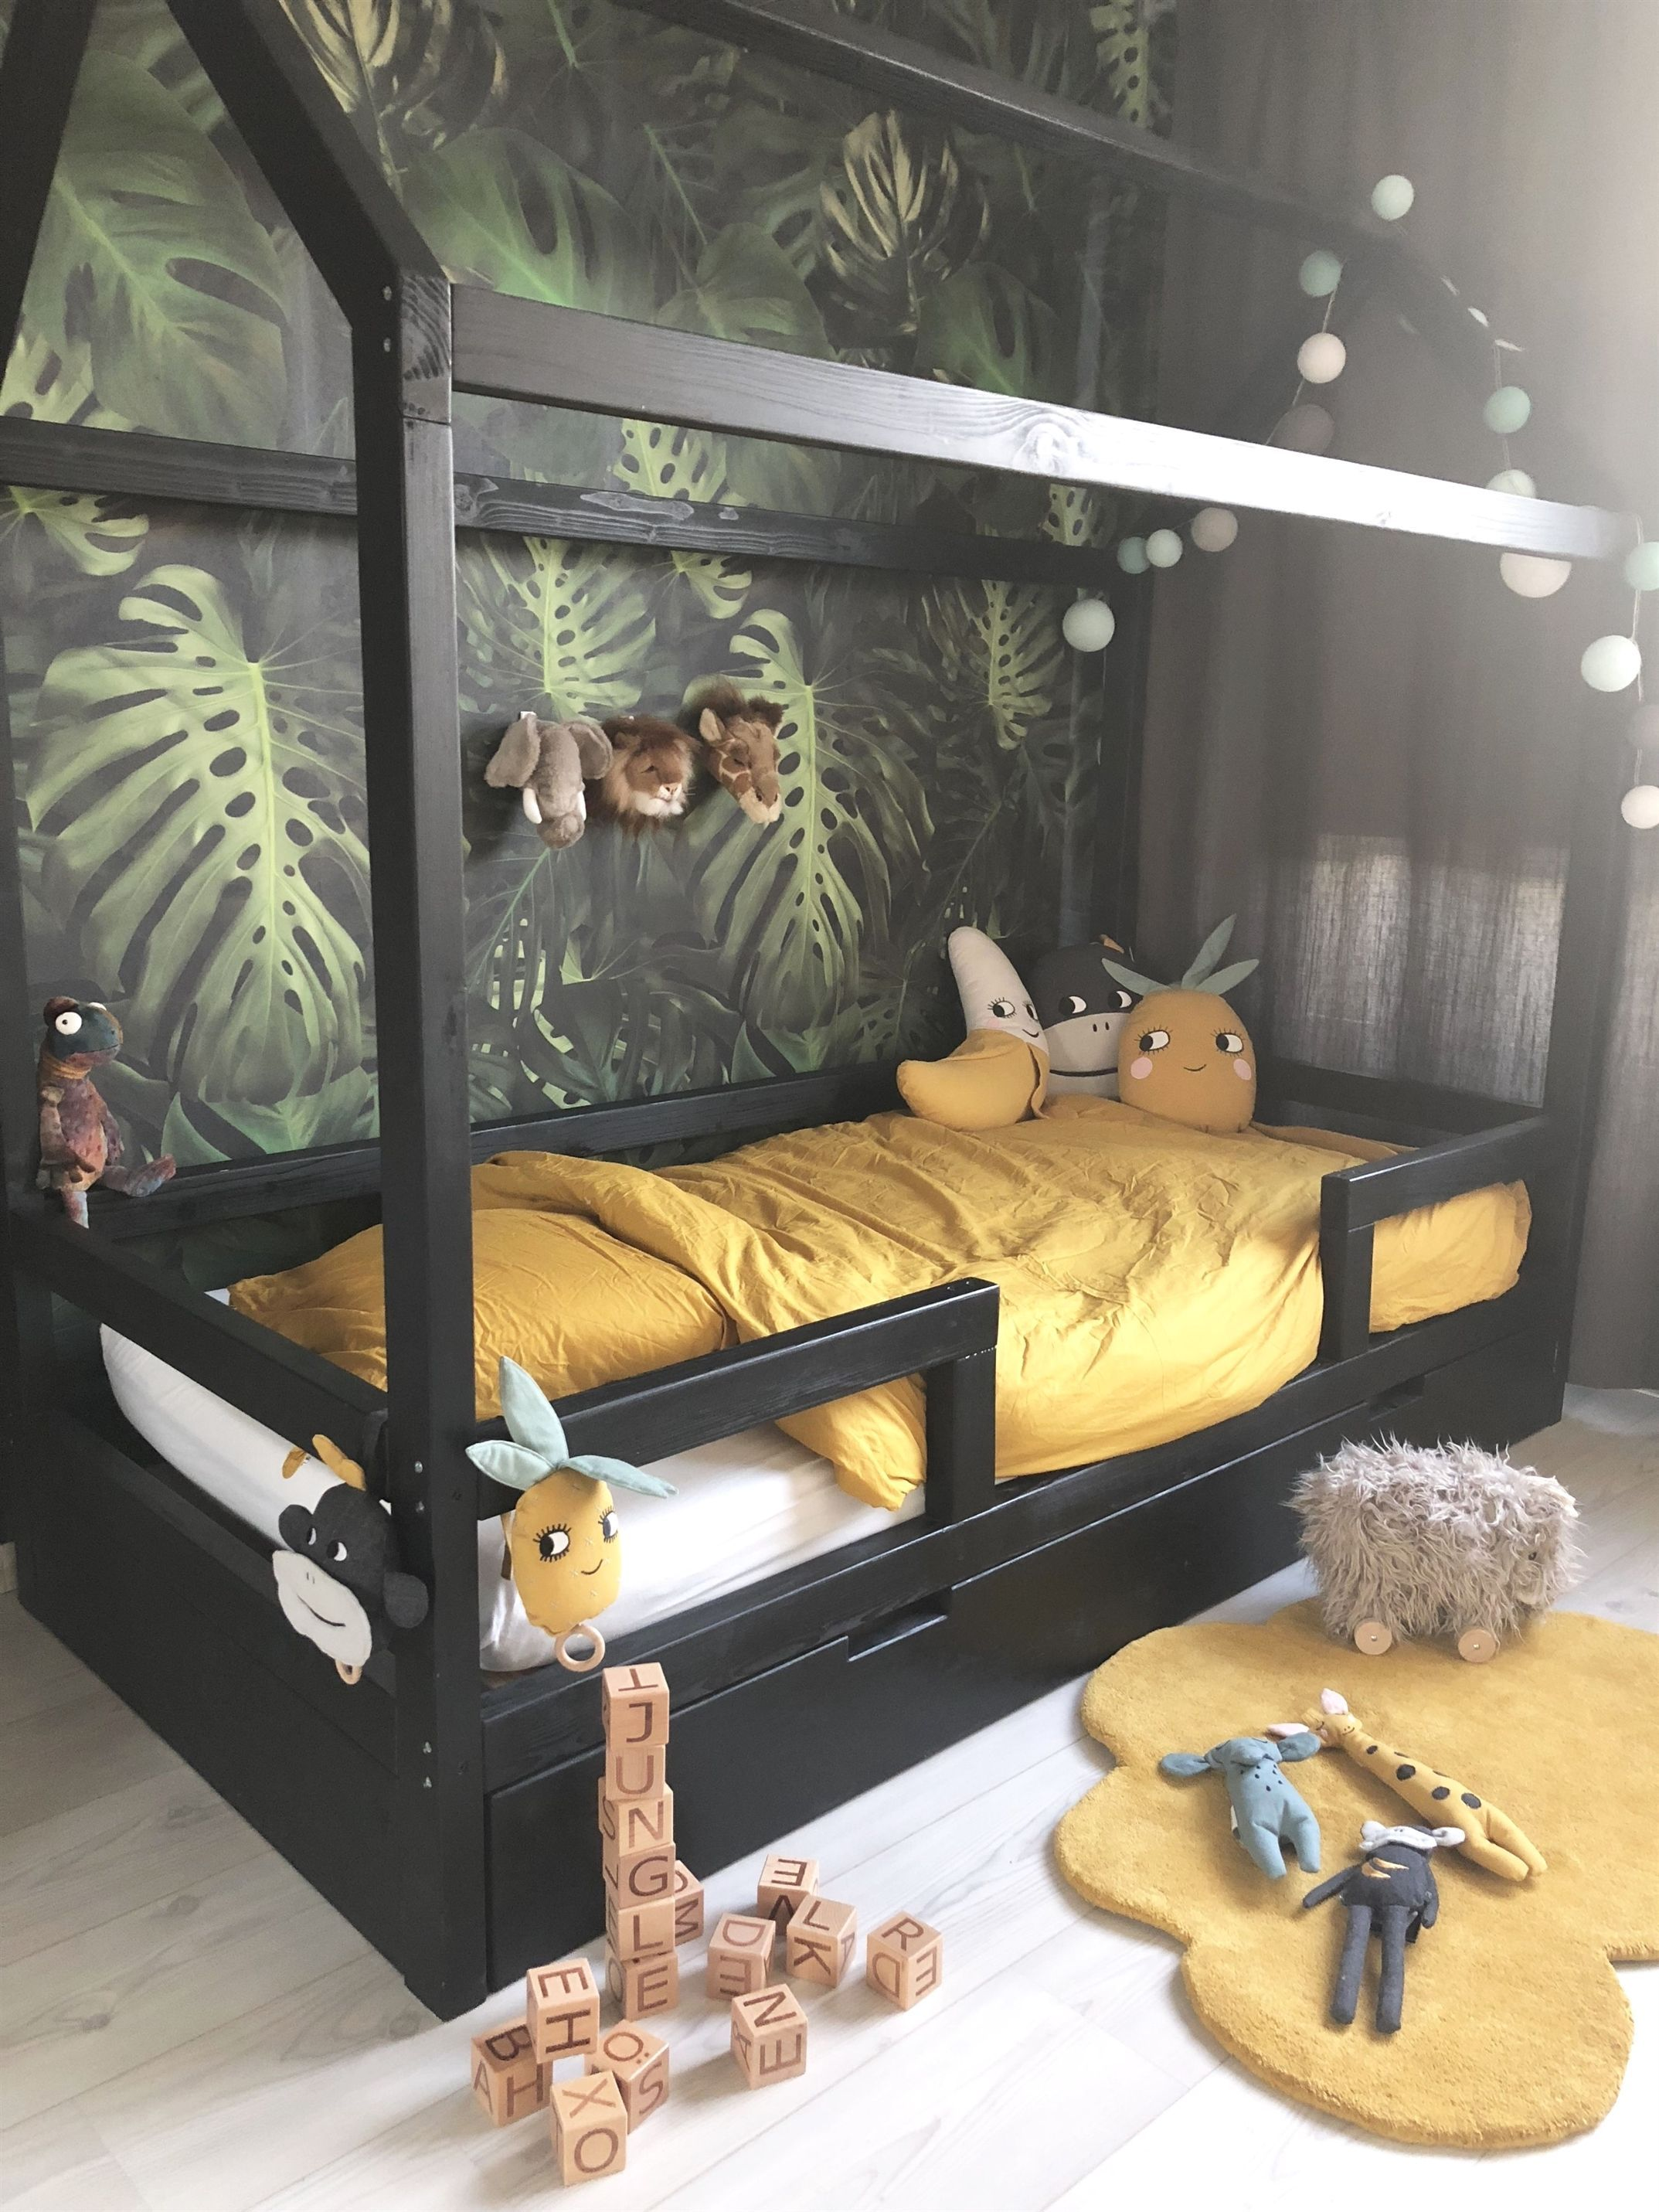 Impressive bedroomdesign ideas to boys 32